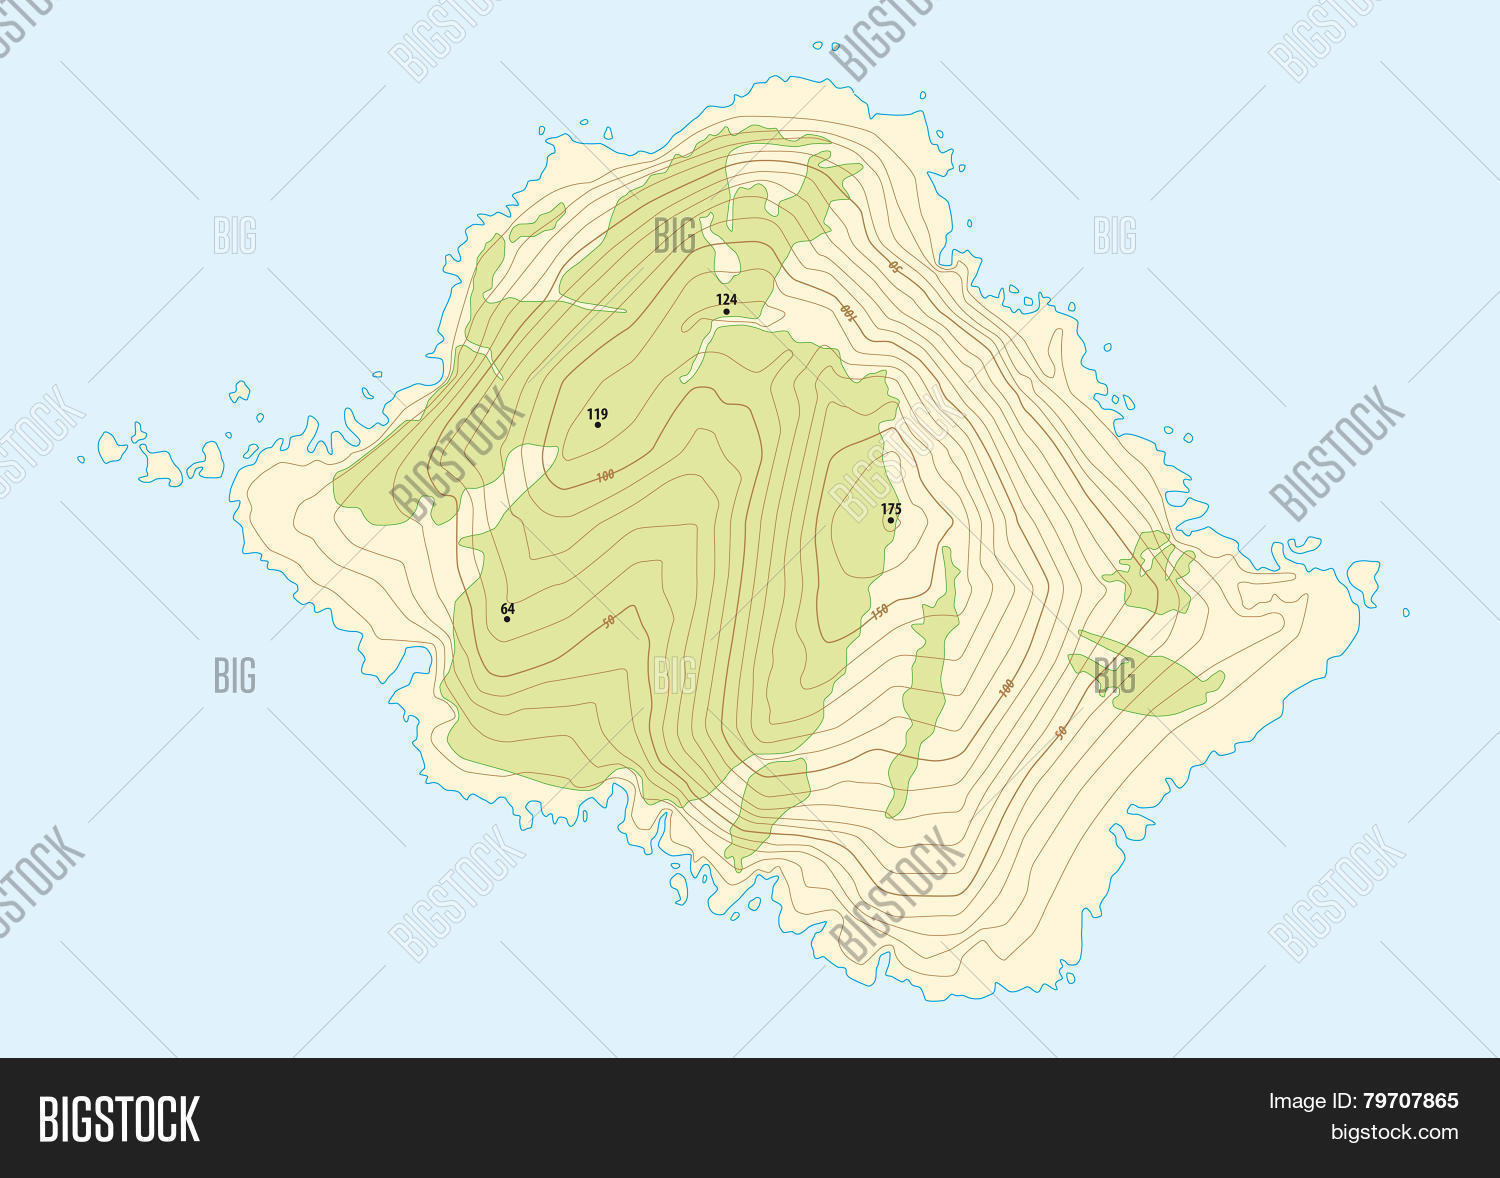 Topographic map vector photo free trial bigstock topographic map of a fictional island gumiabroncs Choice Image